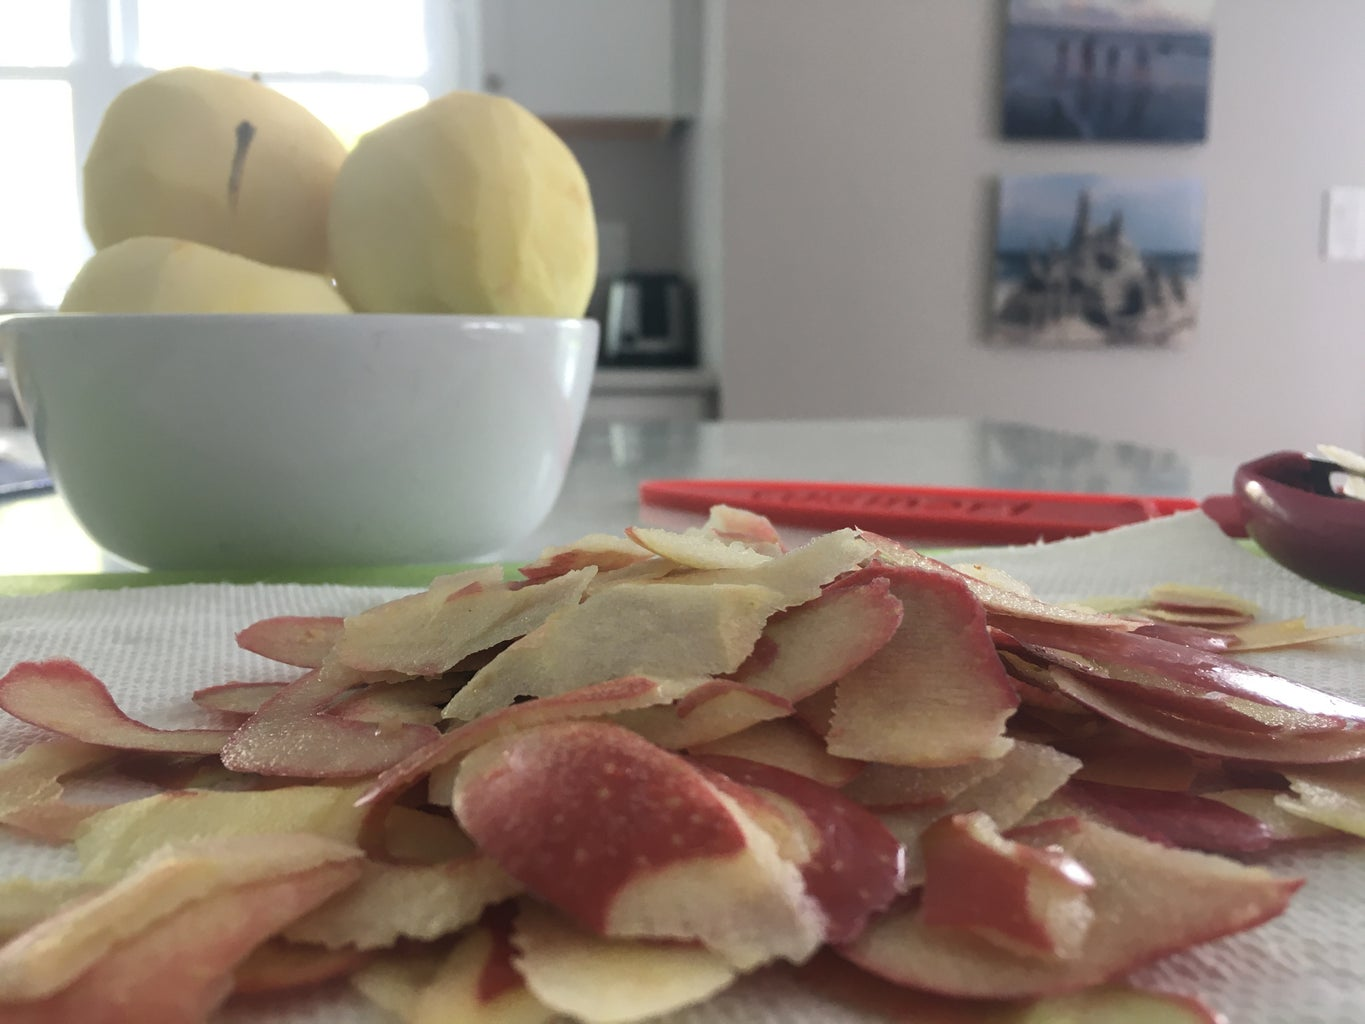 Peel 3 Apples (1 Apple = 1 Cup!!) and Finely Chop the Apples.